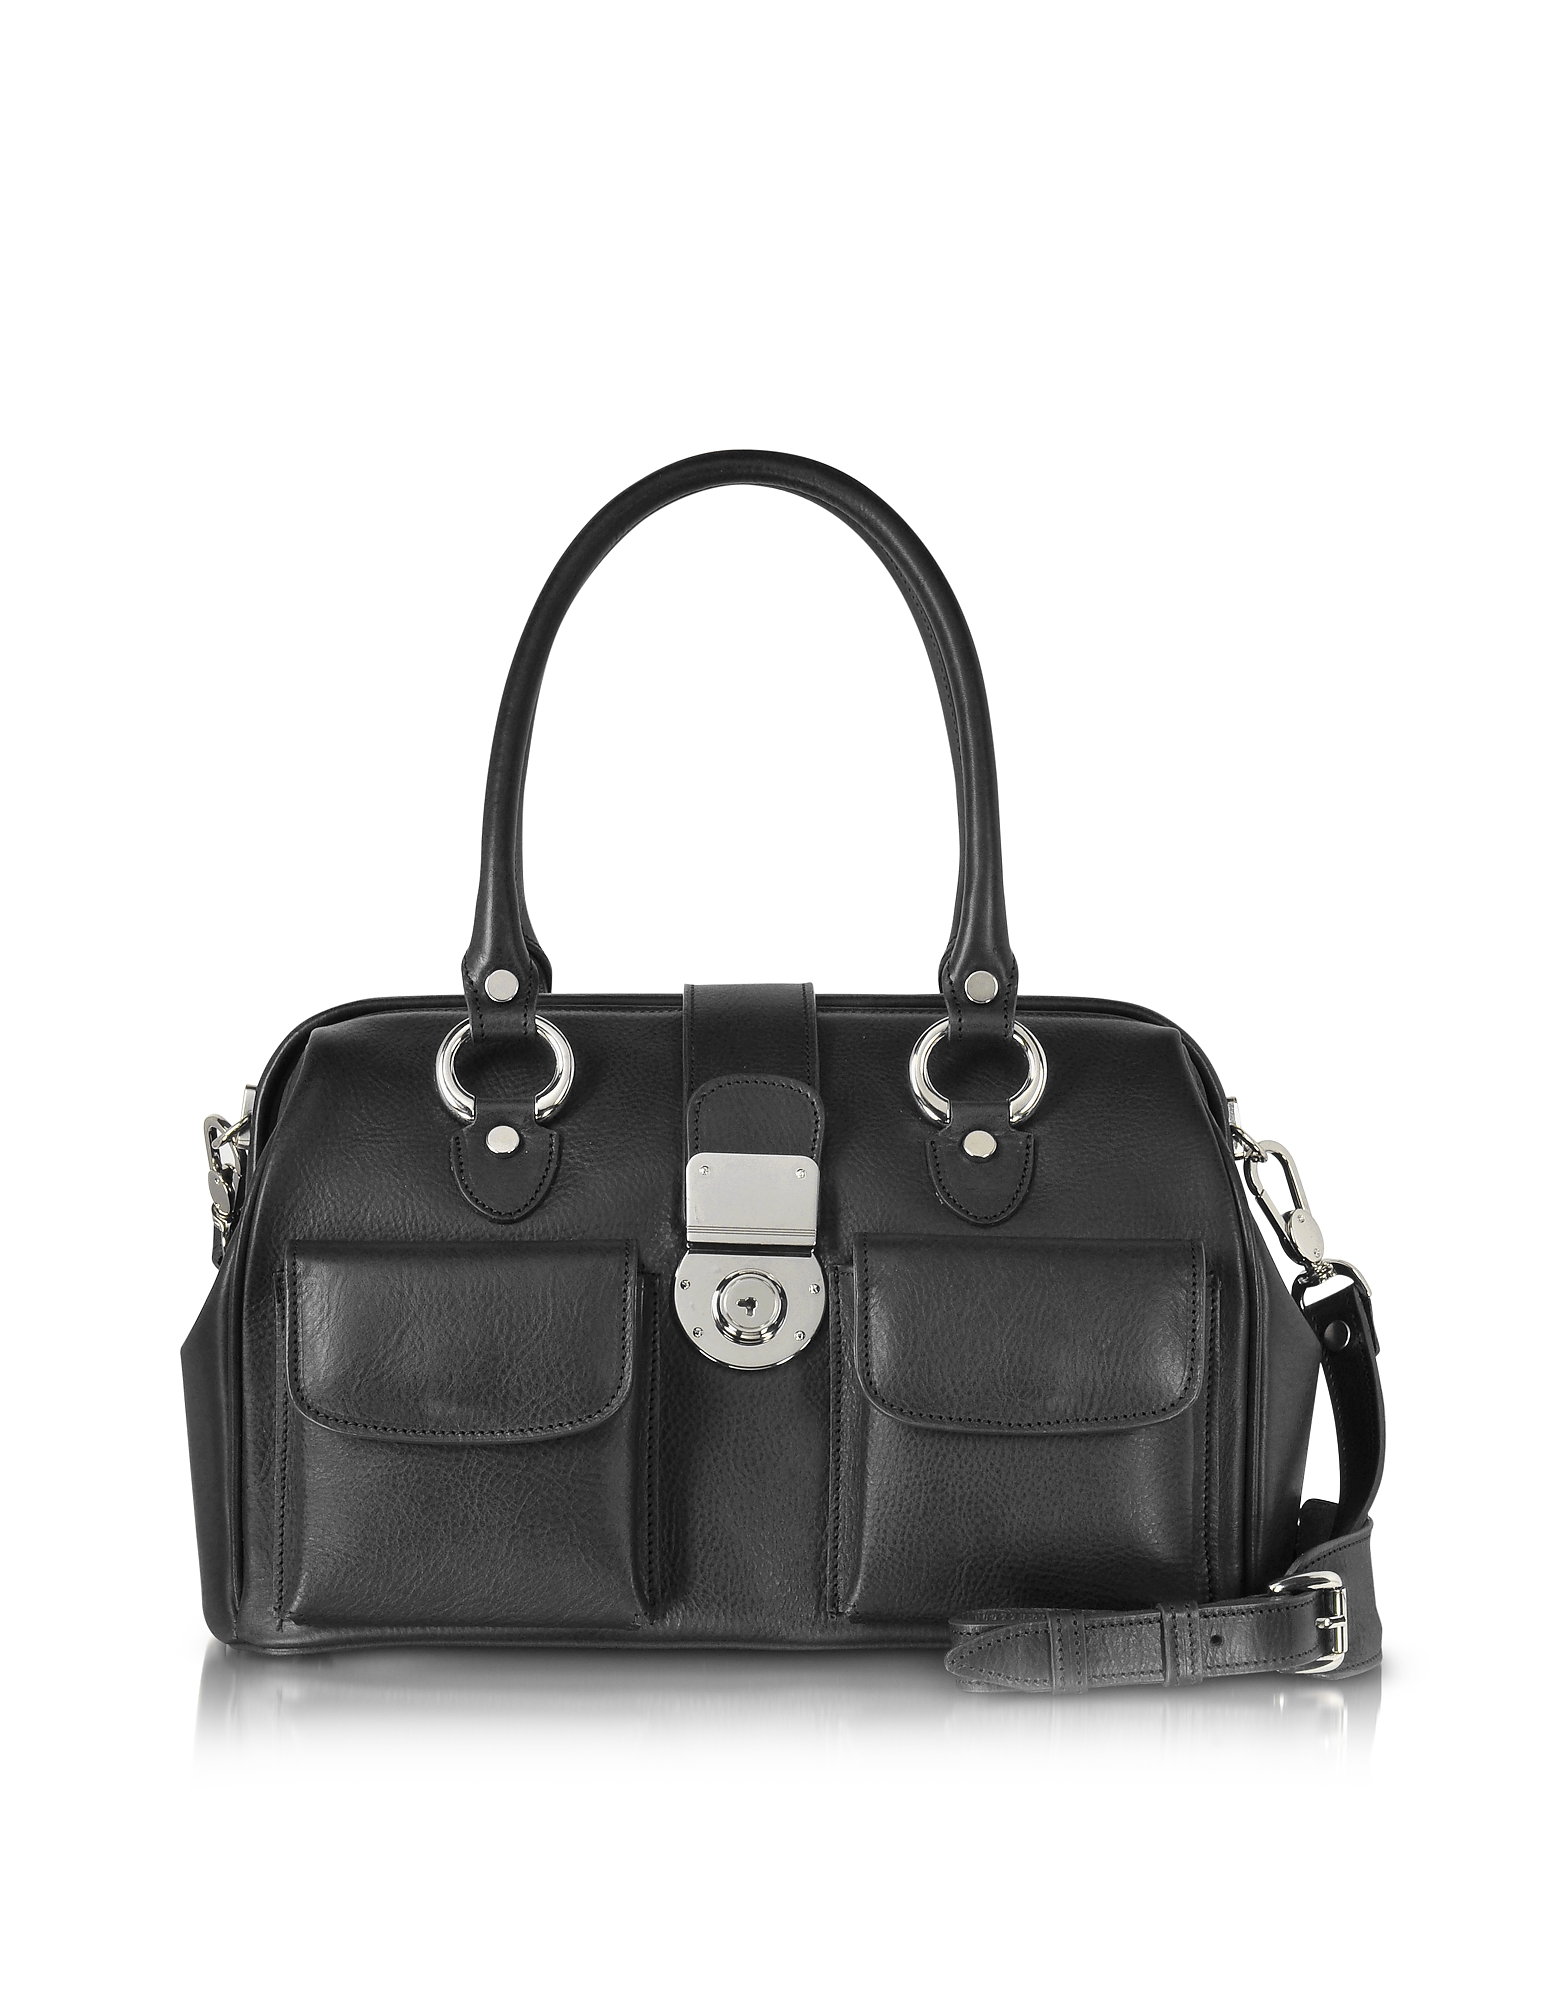 L.A.P.A. Handbags, Front Pocket Calf Leather Doctor-style Handbag